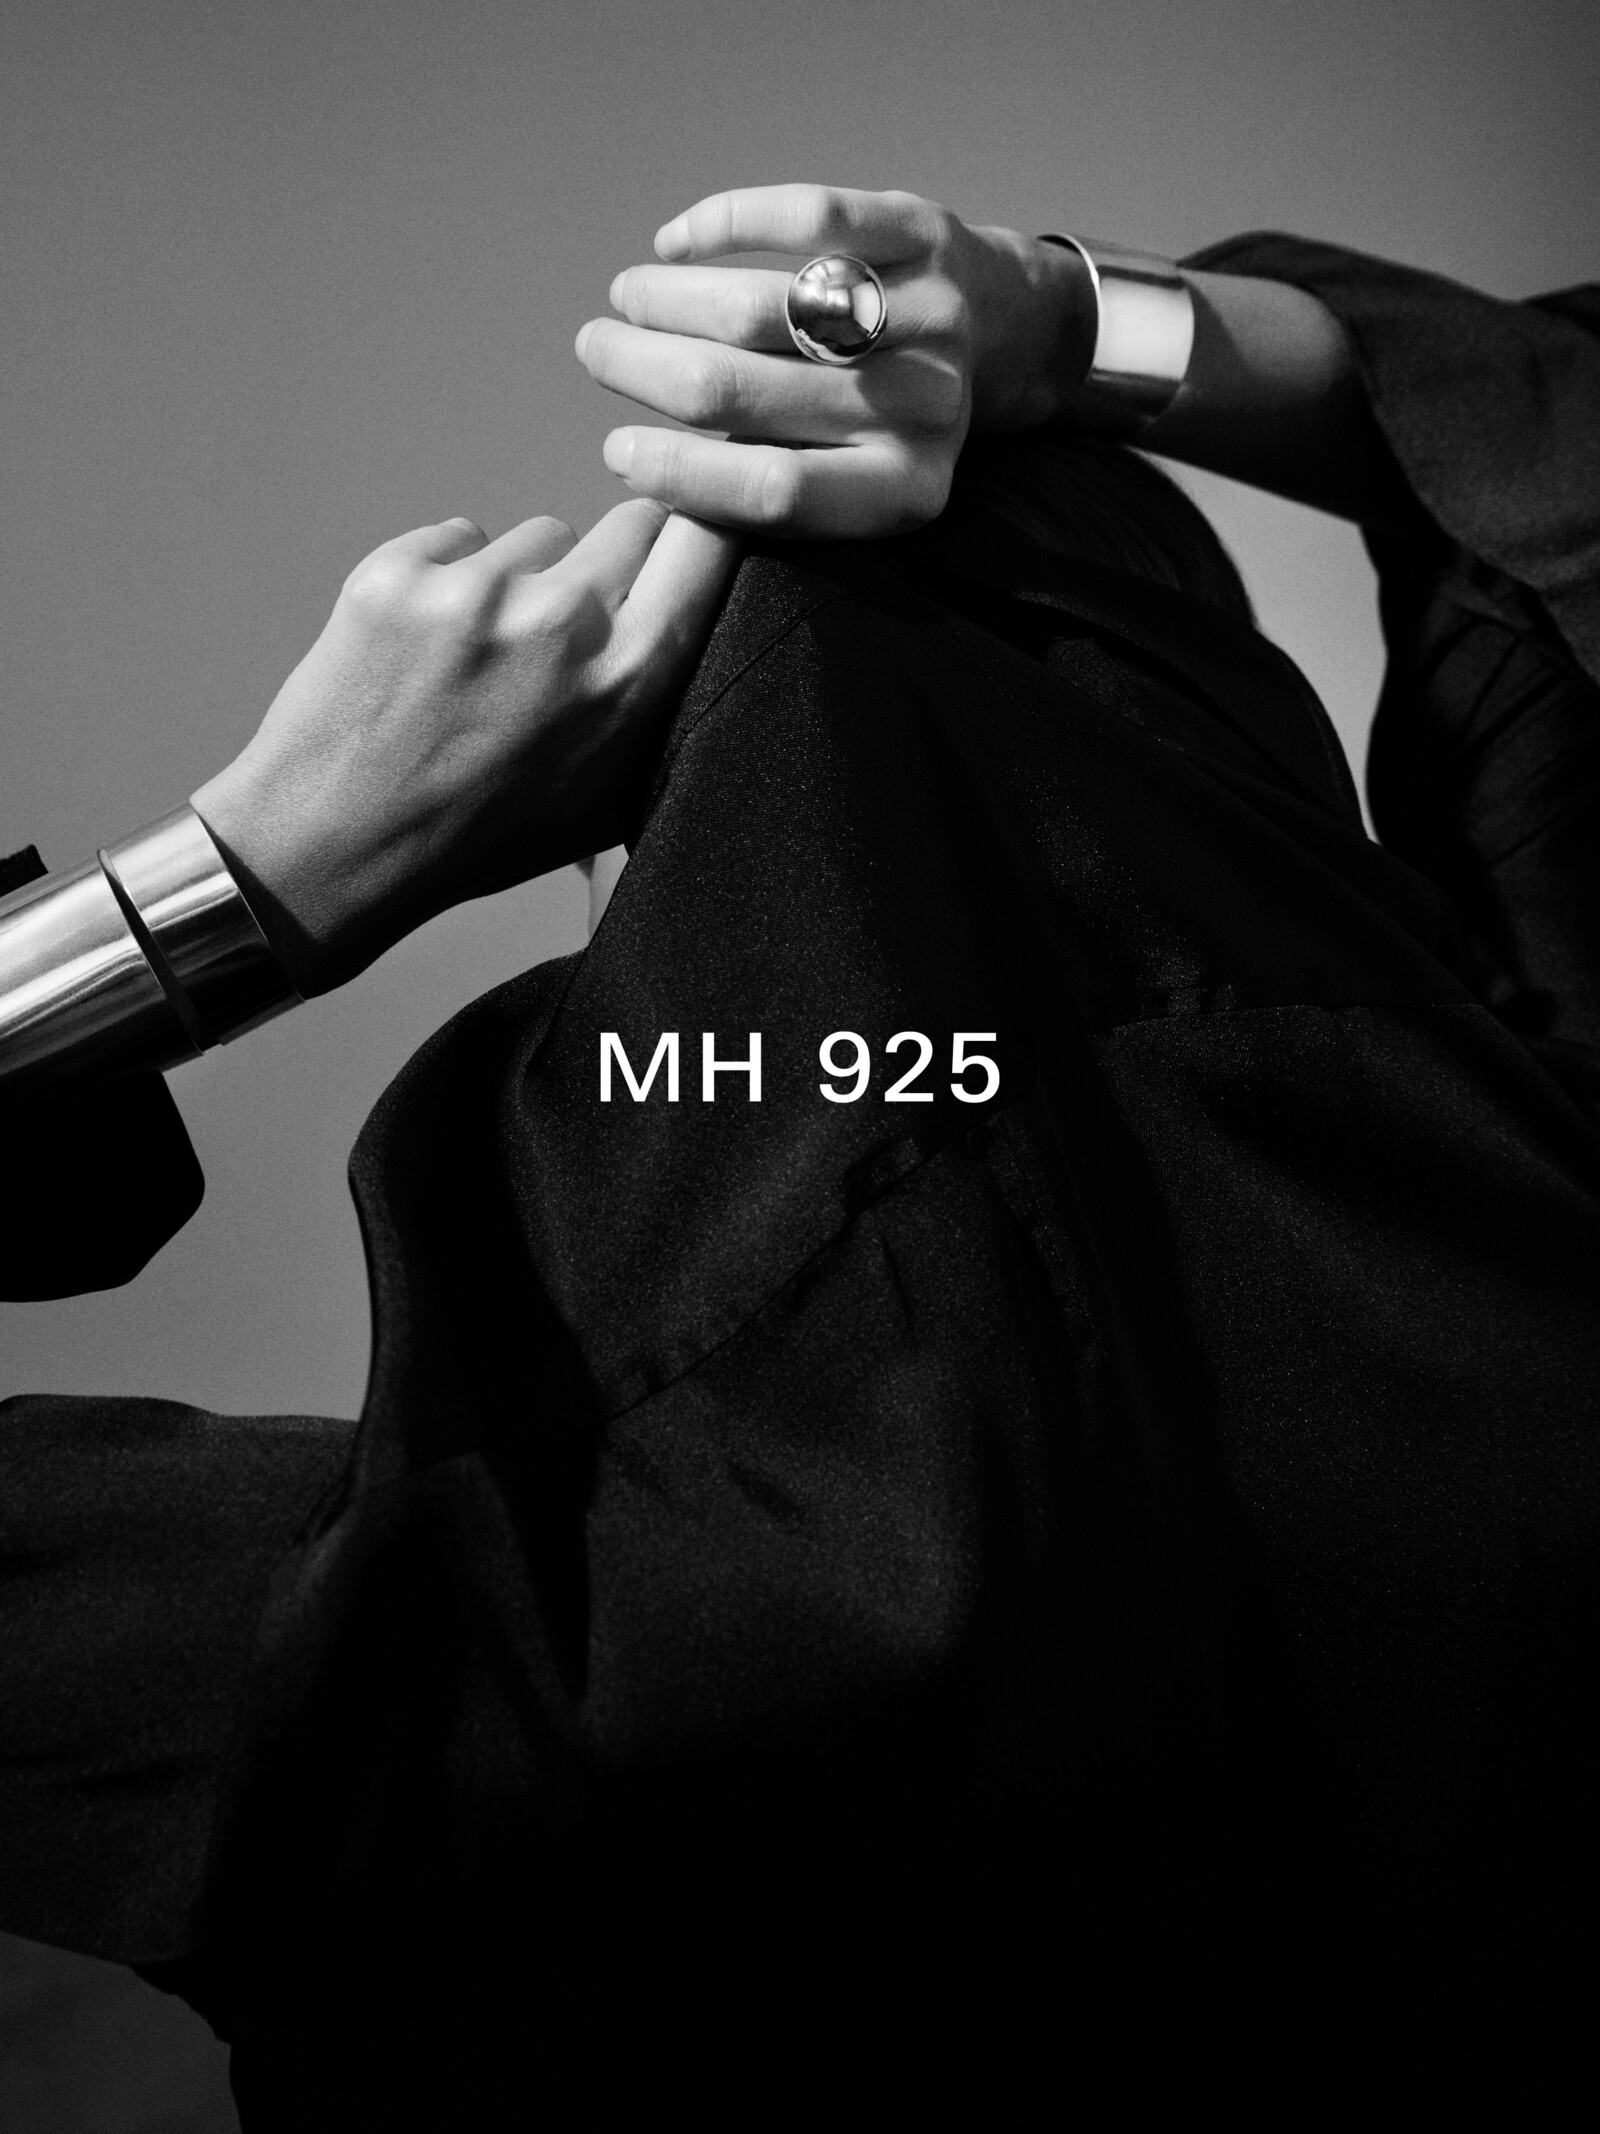 MH 925 images11